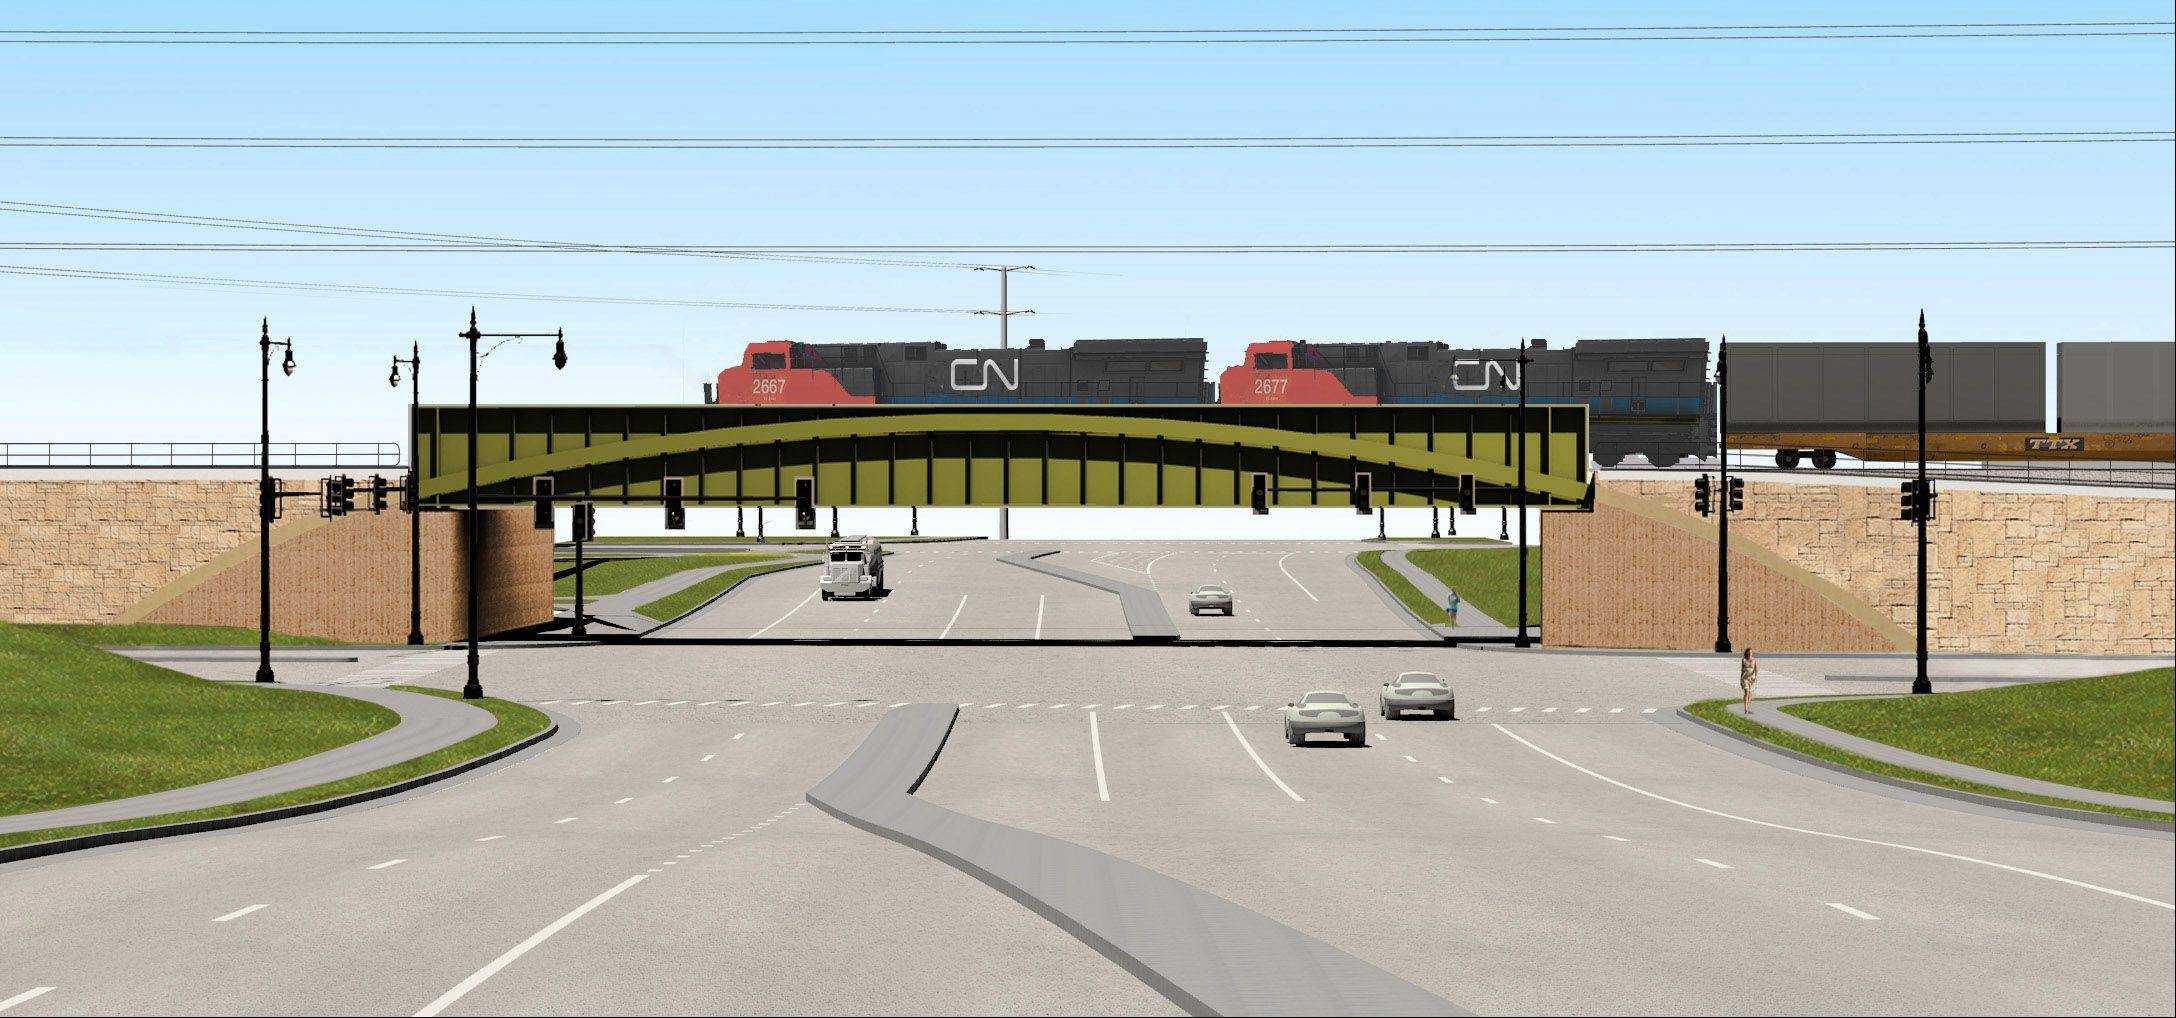 The lowering of Rollins Road beneath the Canadian National railroad adjacent to Route 83 in Round Lake Beach is expected to eliminate a longtime traffic bottleneck.